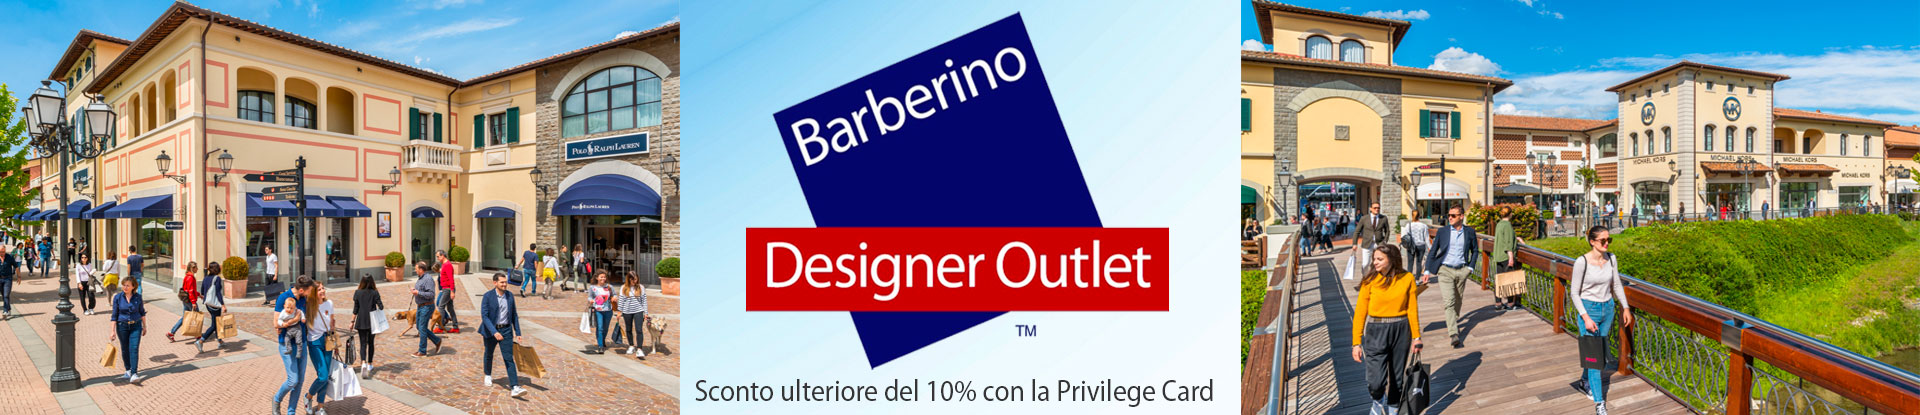 Designe Outlet Barberino